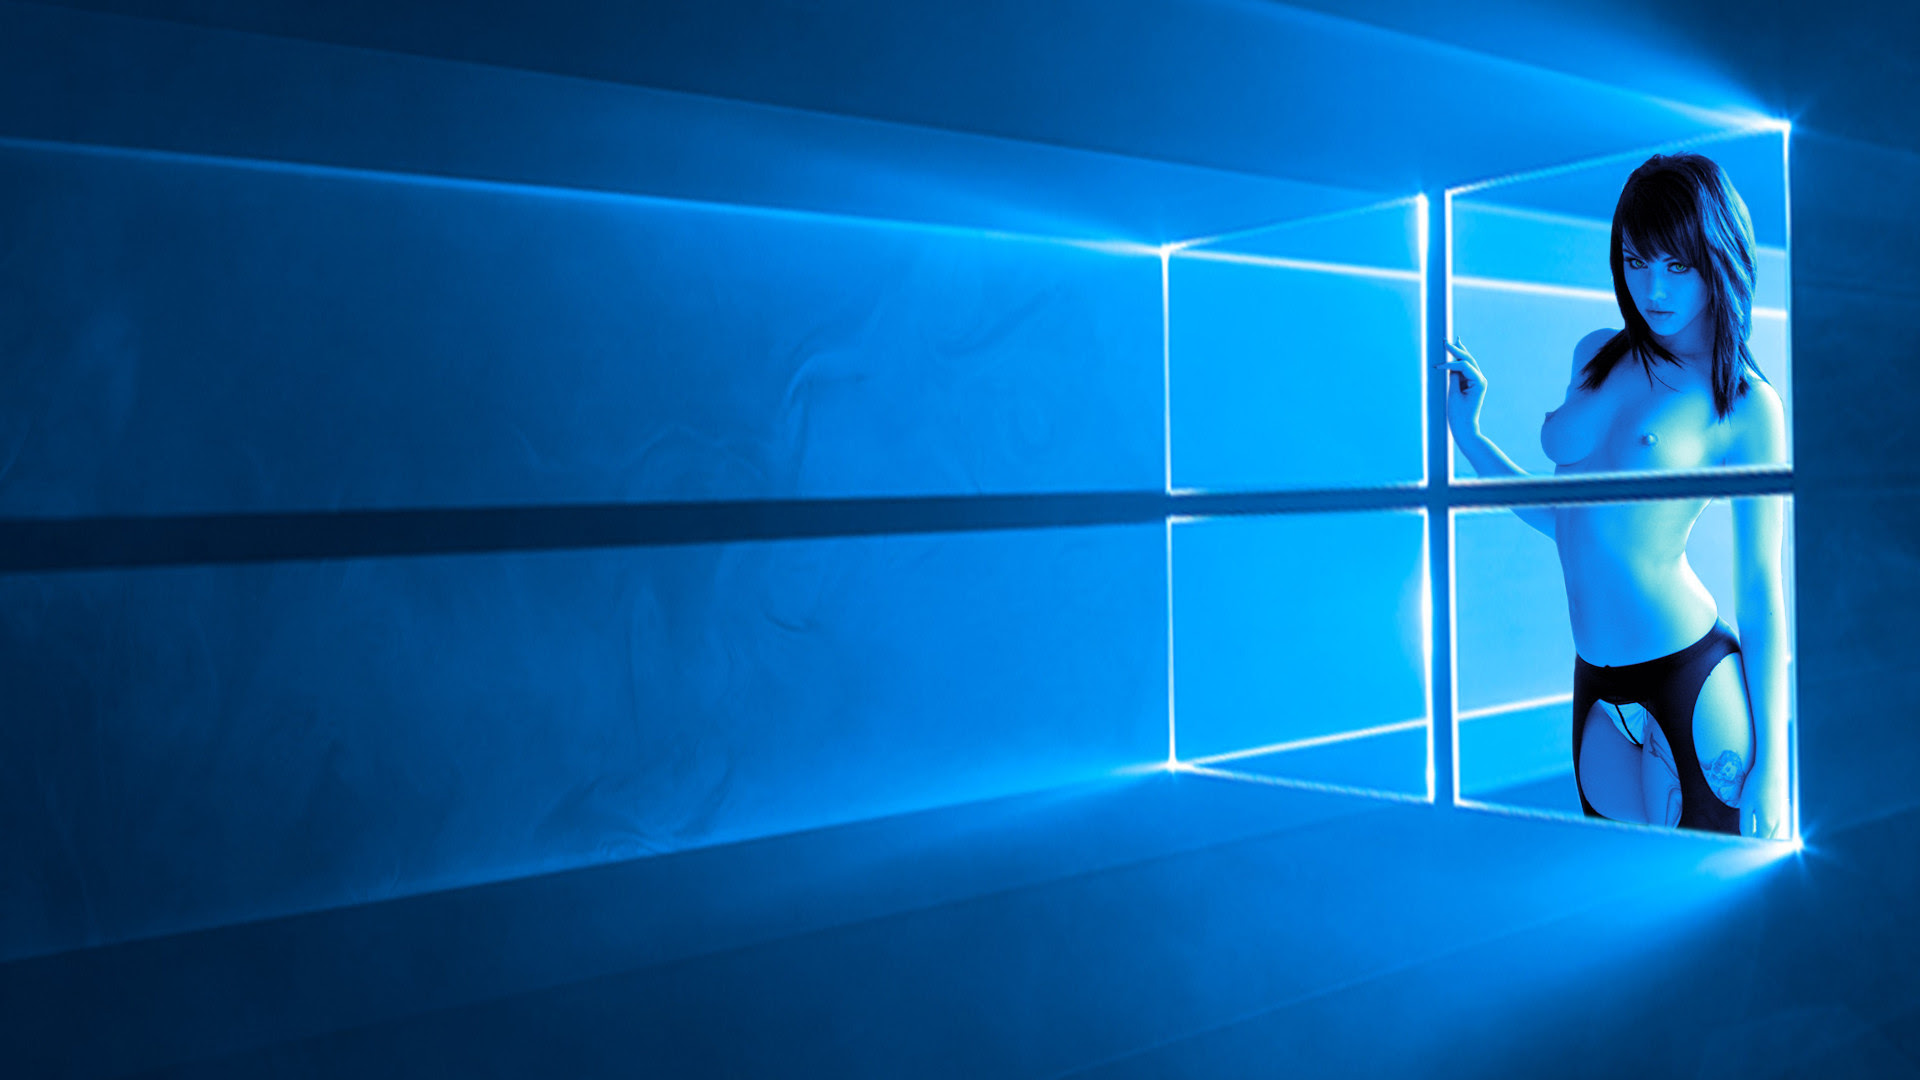 Cool Ultra Hd Windows 10 Wallpaper Hd 1920x1080 Pictures